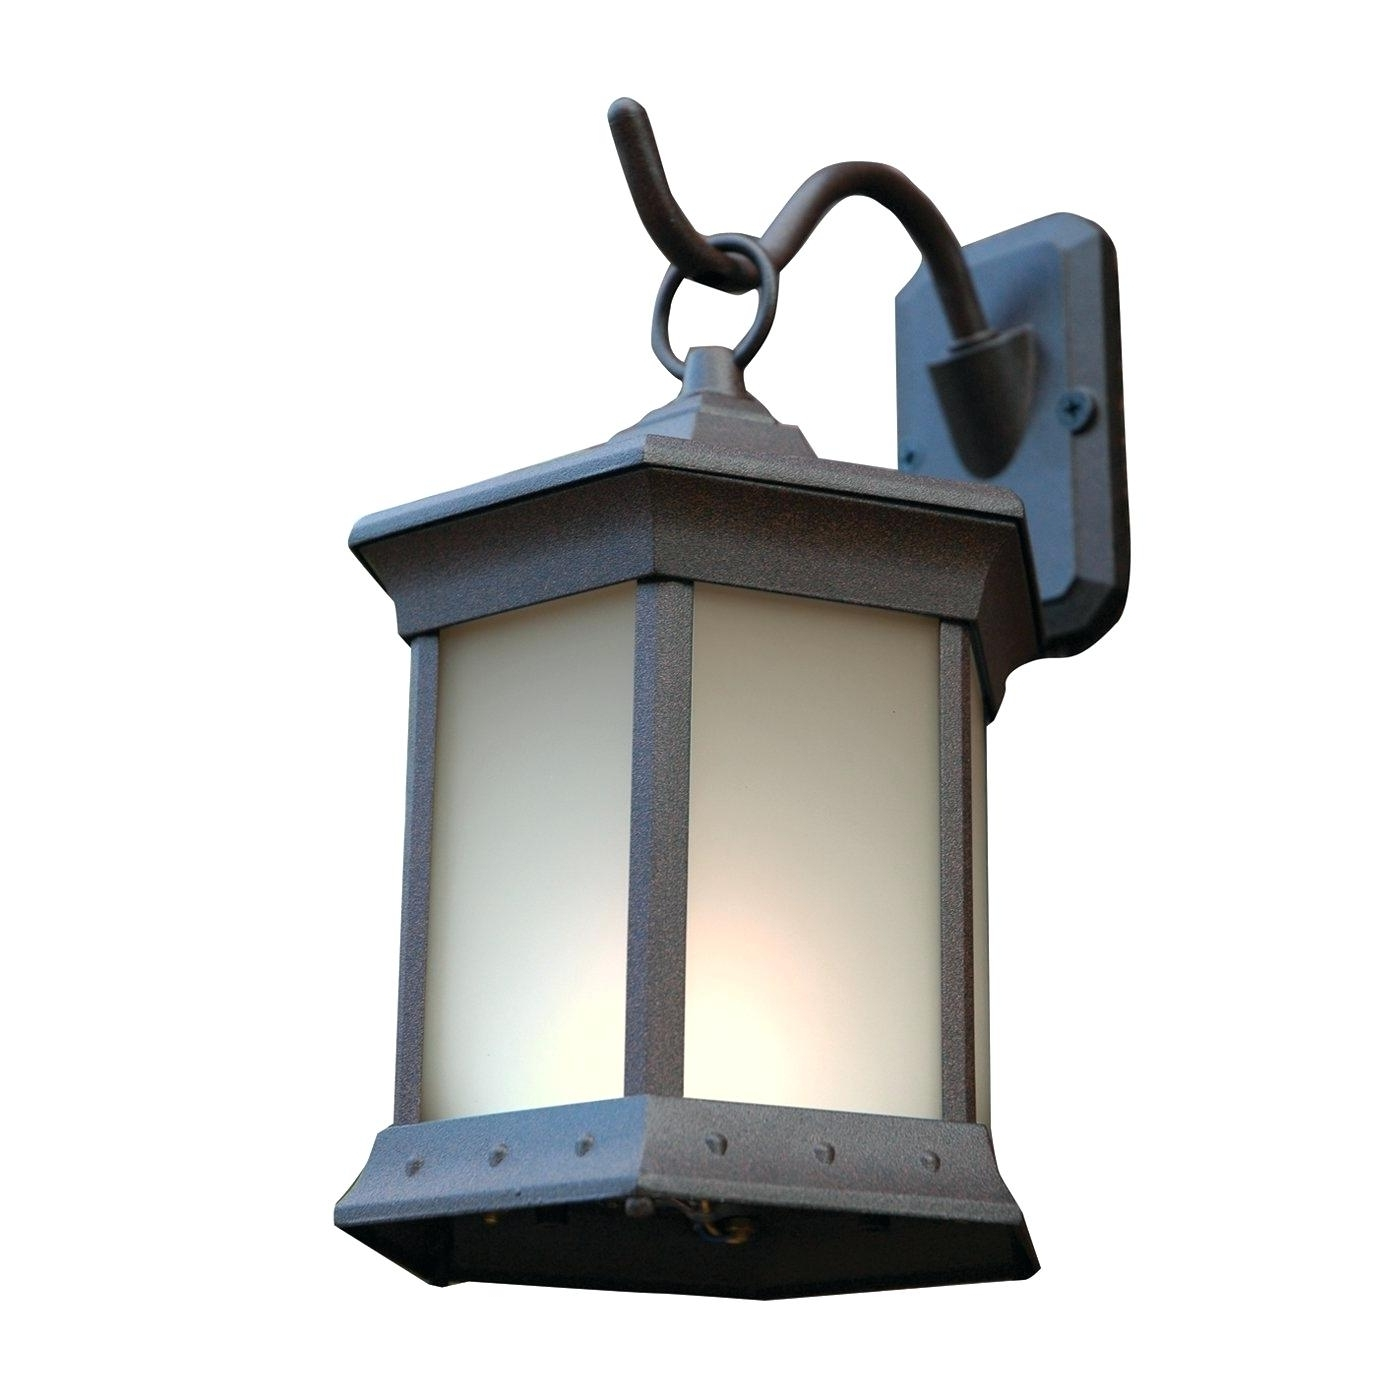 Light : Wall Mount Solar Light Powered Led Outdoor Mounting Kit In Most Recent Quality Outdoor Wall Lighting (View 15 of 20)